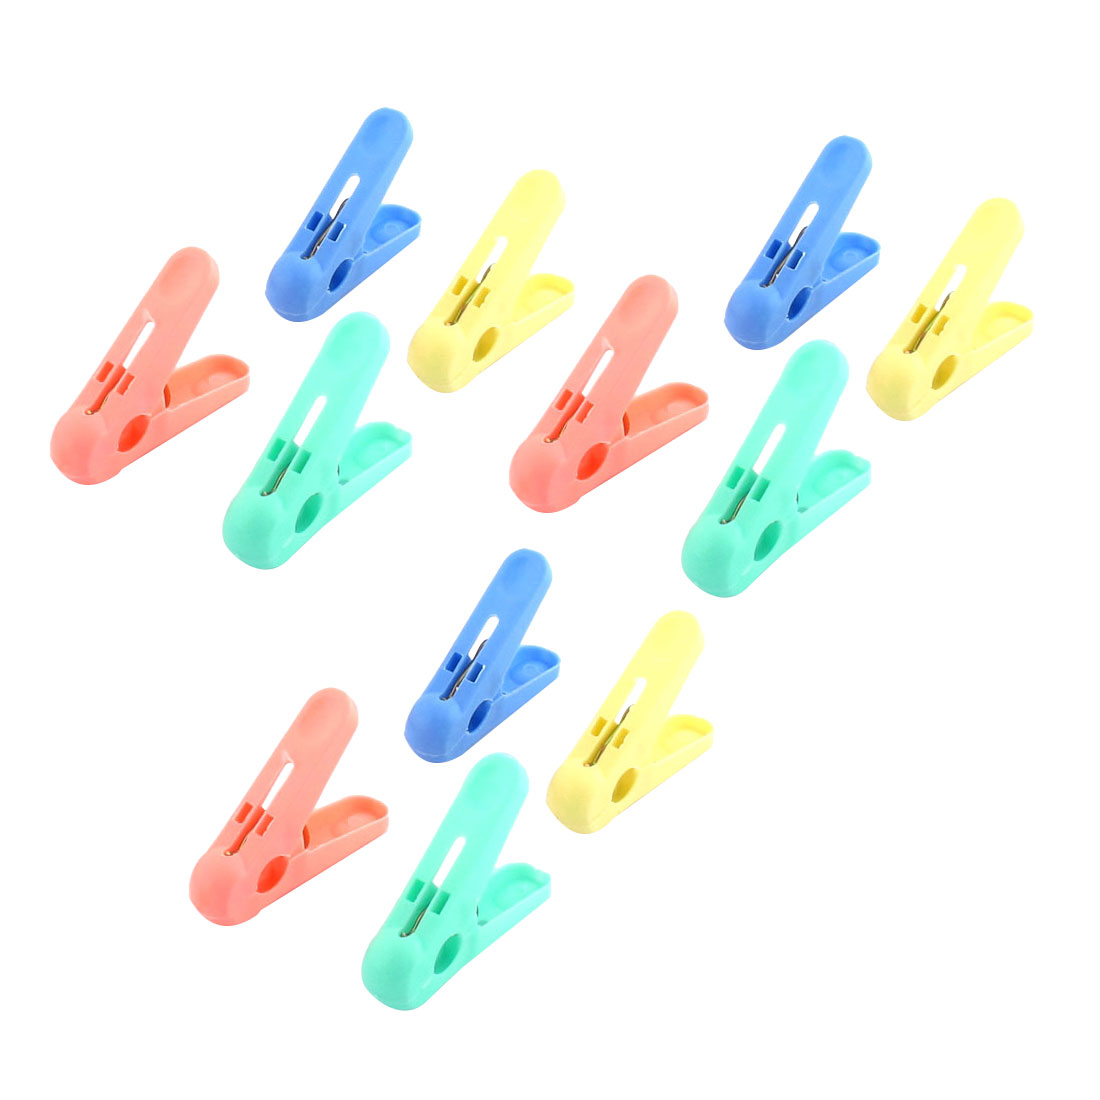 Household Laundry Plastic Hanging Socks Clothes Pins Clothespins Clip Pegs 12pcs